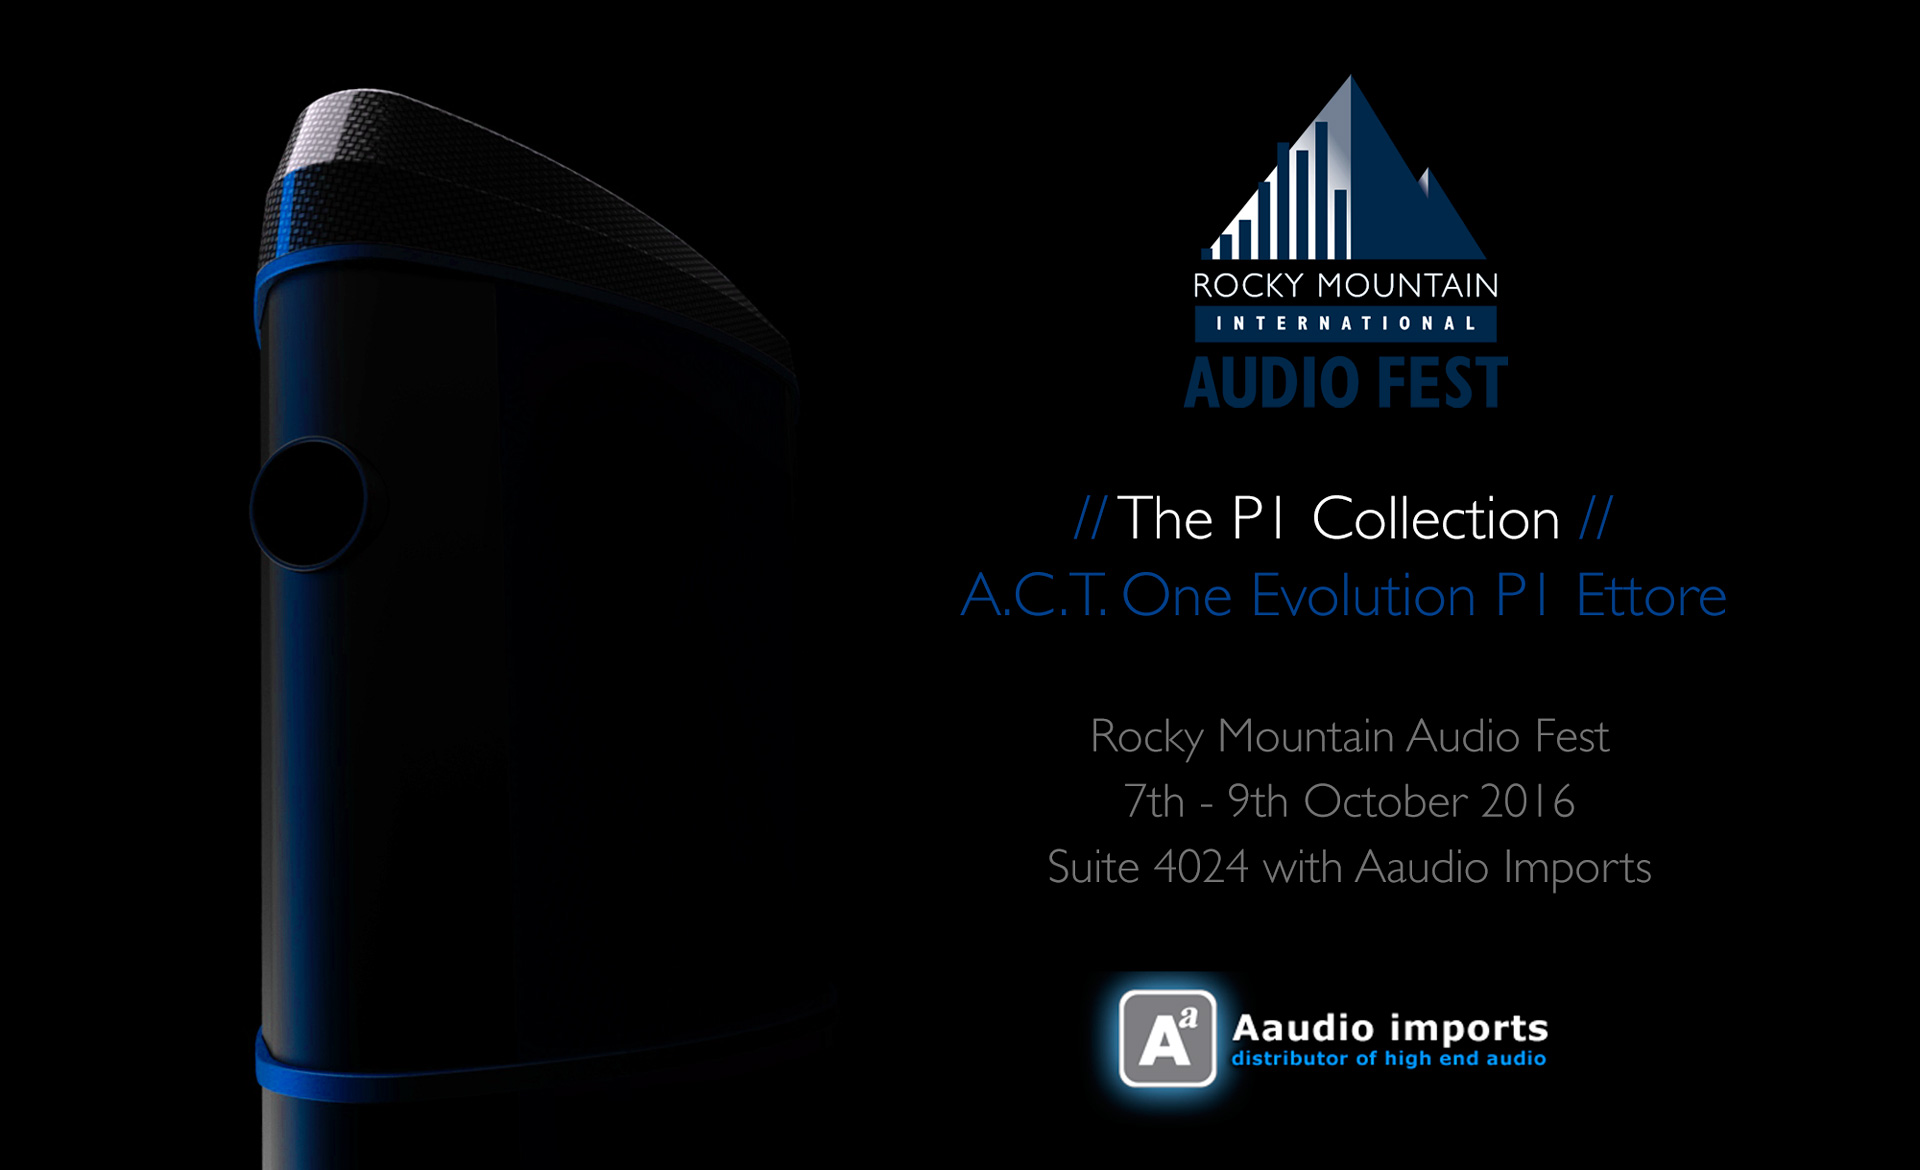 Geometry Series P1 Collection Tour Poster showing A.C.T. One Evolution P1 Loudspeaker finished in a bespoke Ettore Blue Hypetex Coloured Carbon Fibre